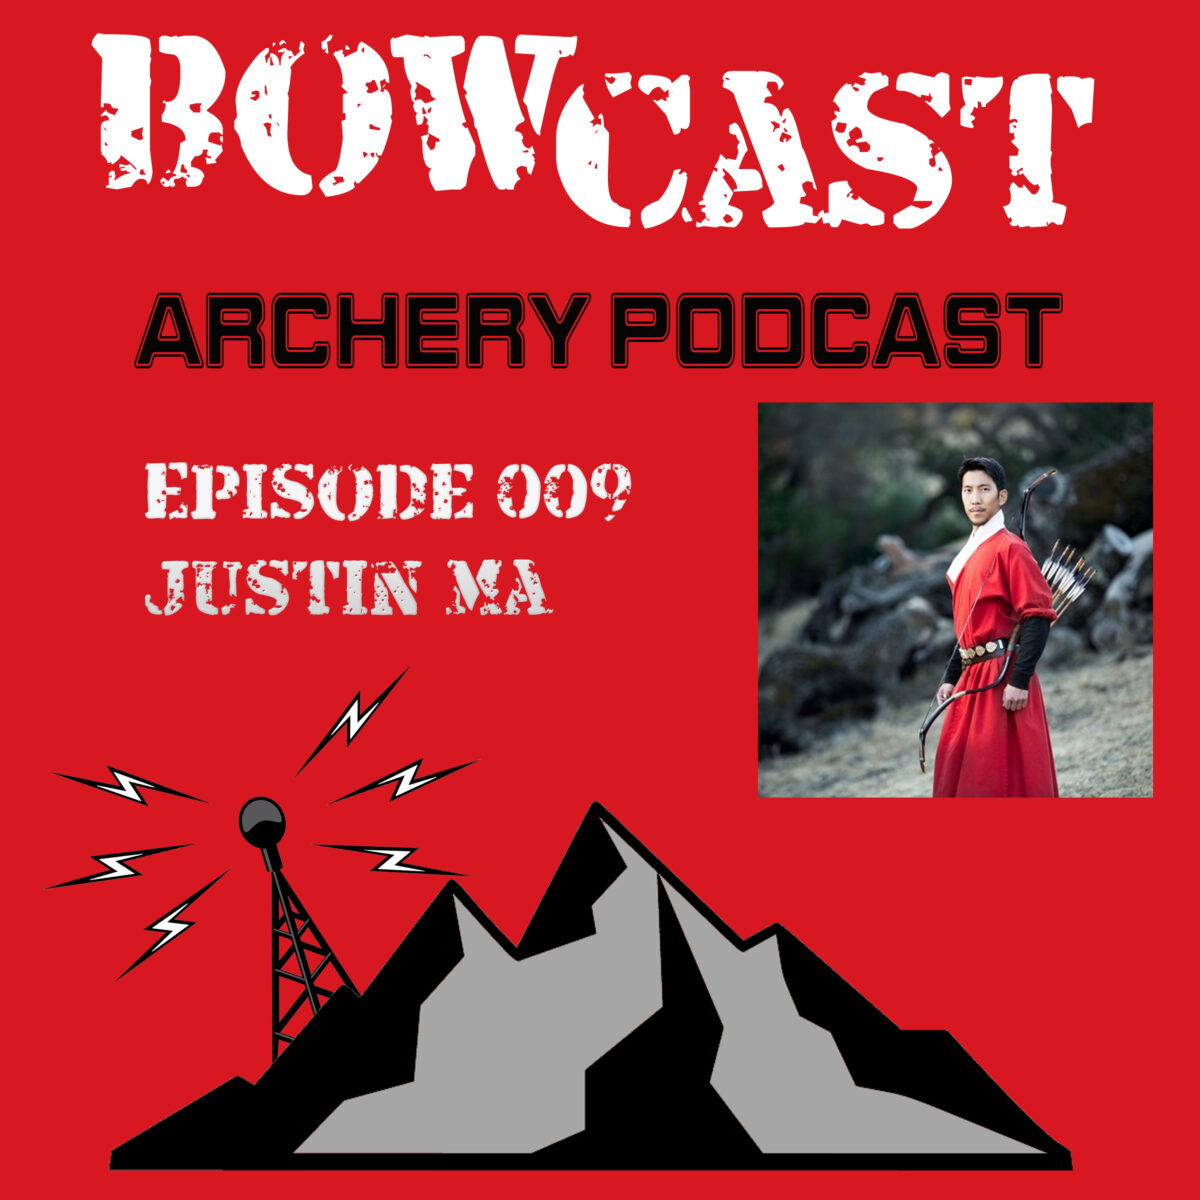 Bowcast Archery Podcast 009 - Justin Ma - Chinese Traditional Archery